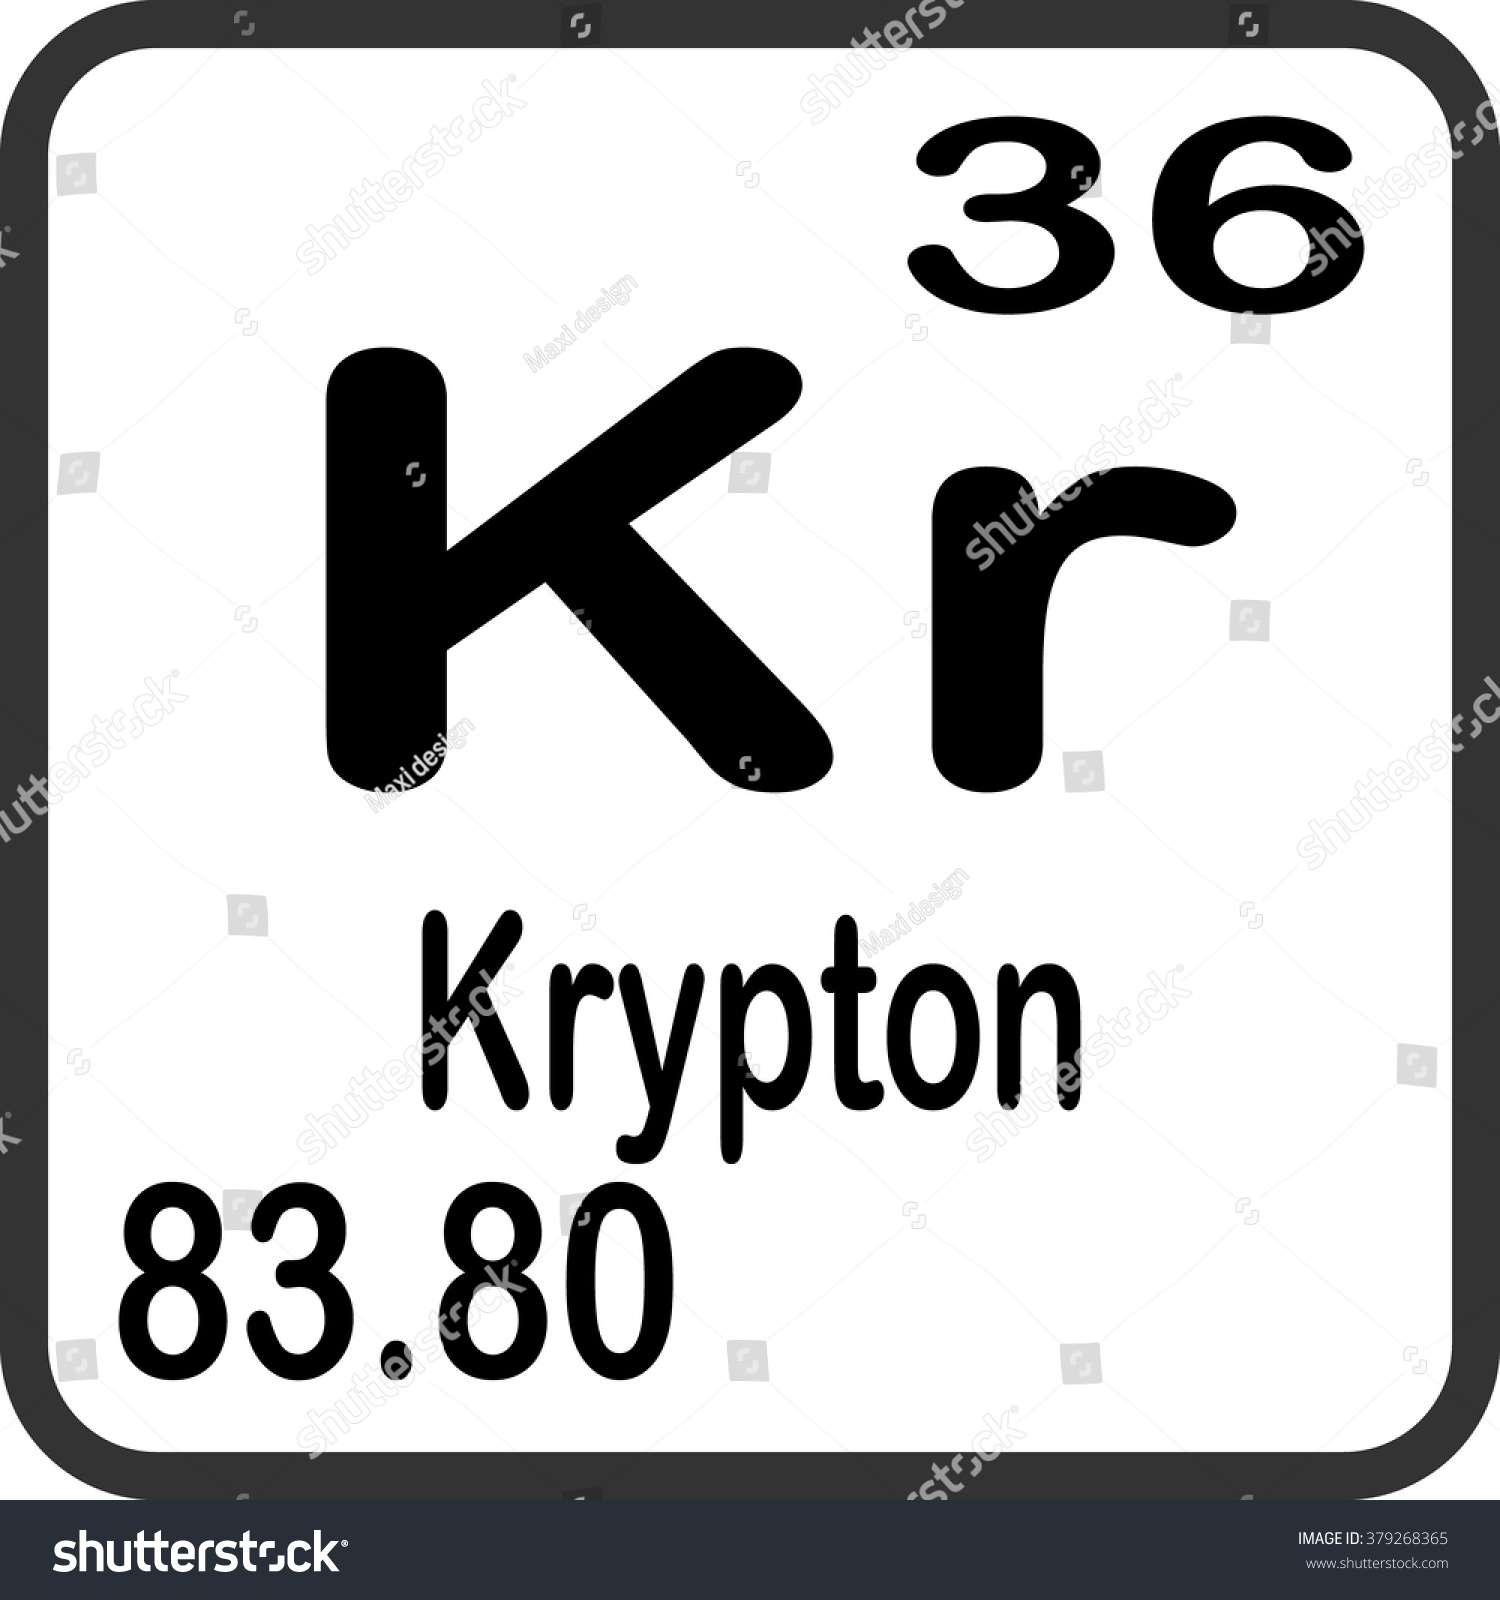 Periodic table of elements krypton choice image periodic table krypton periodic table choice image periodic table images krypton periodic table gallery periodic table images krypton gamestrikefo Choice Image